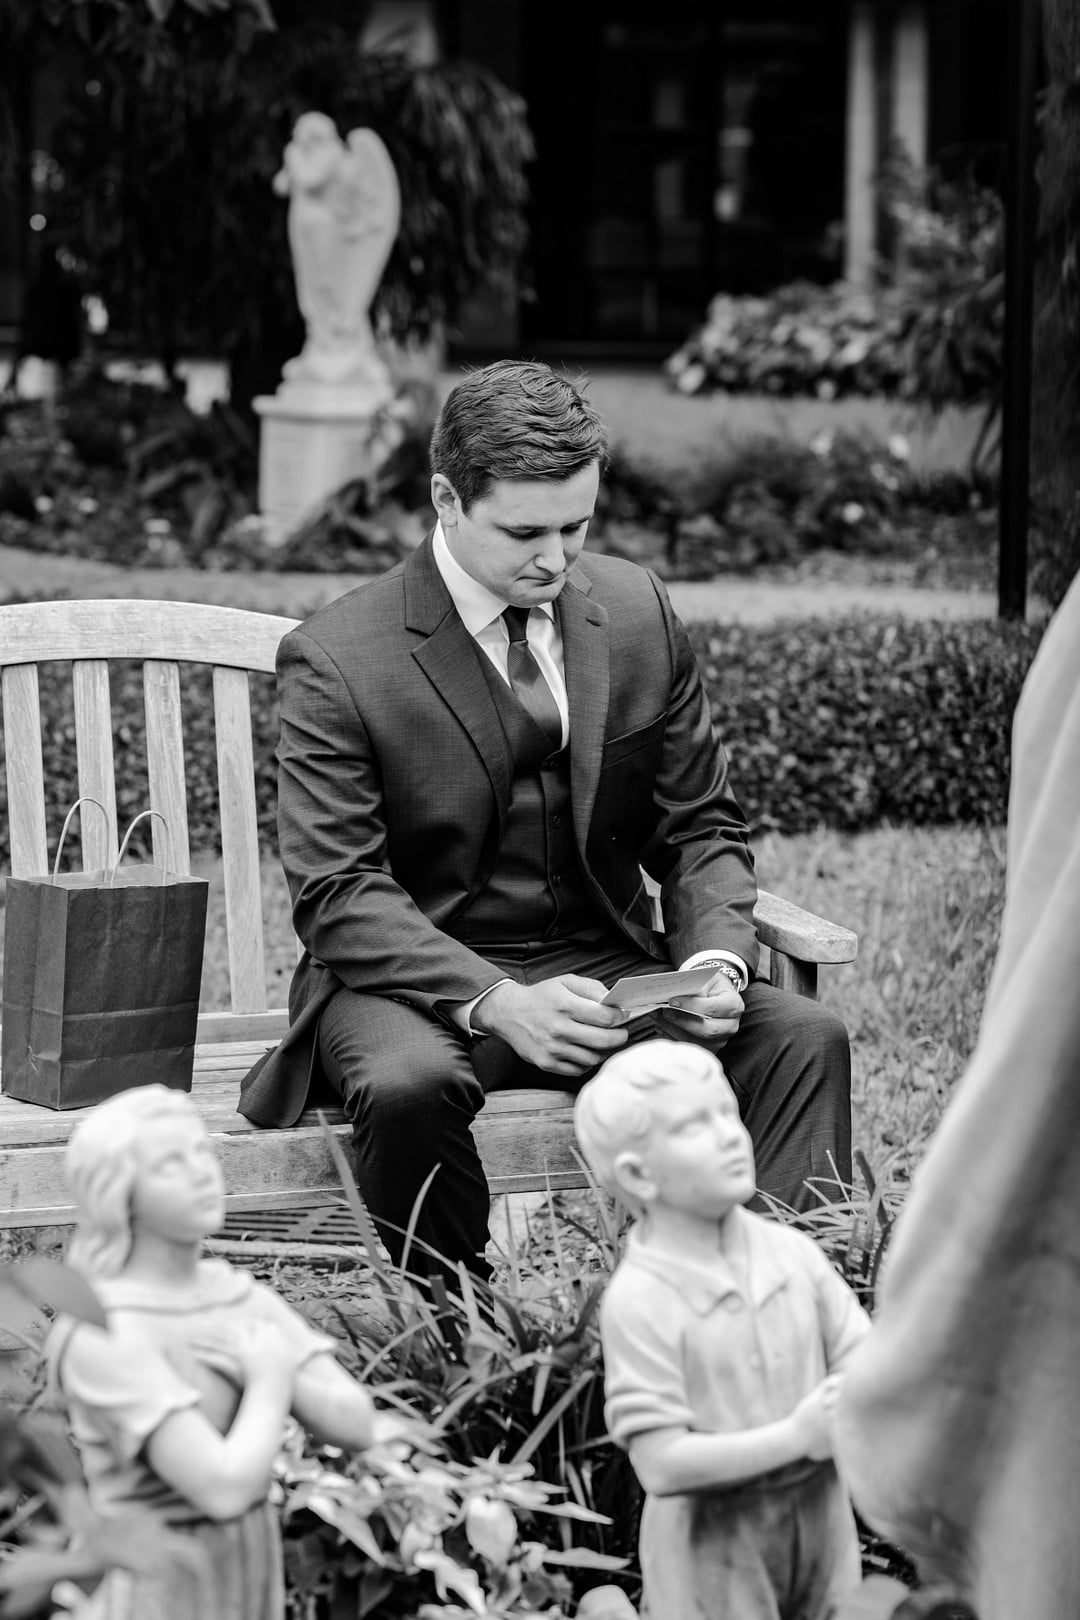 black and white image of groom sitting in garden on a bench looking at letter with statues in front of him